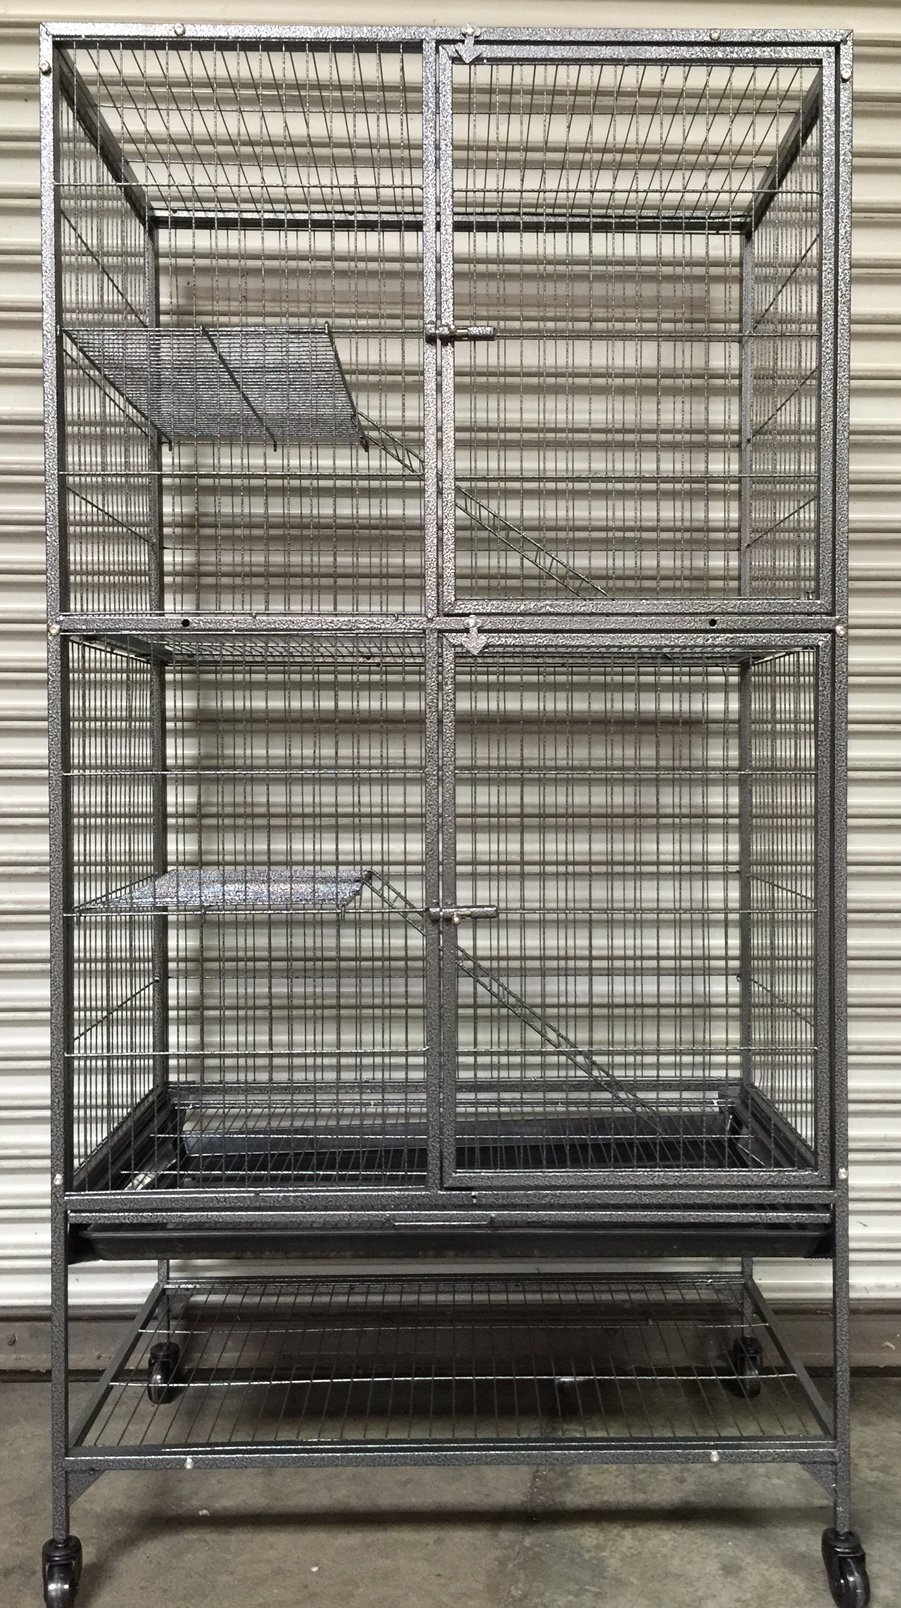 Extra Large Double Large Front Doors For Feisty Ferret Chinchilla Rat Small Animal Wrought Iron Cage With Stand, 1/2 Bar Spacing,Black Vein